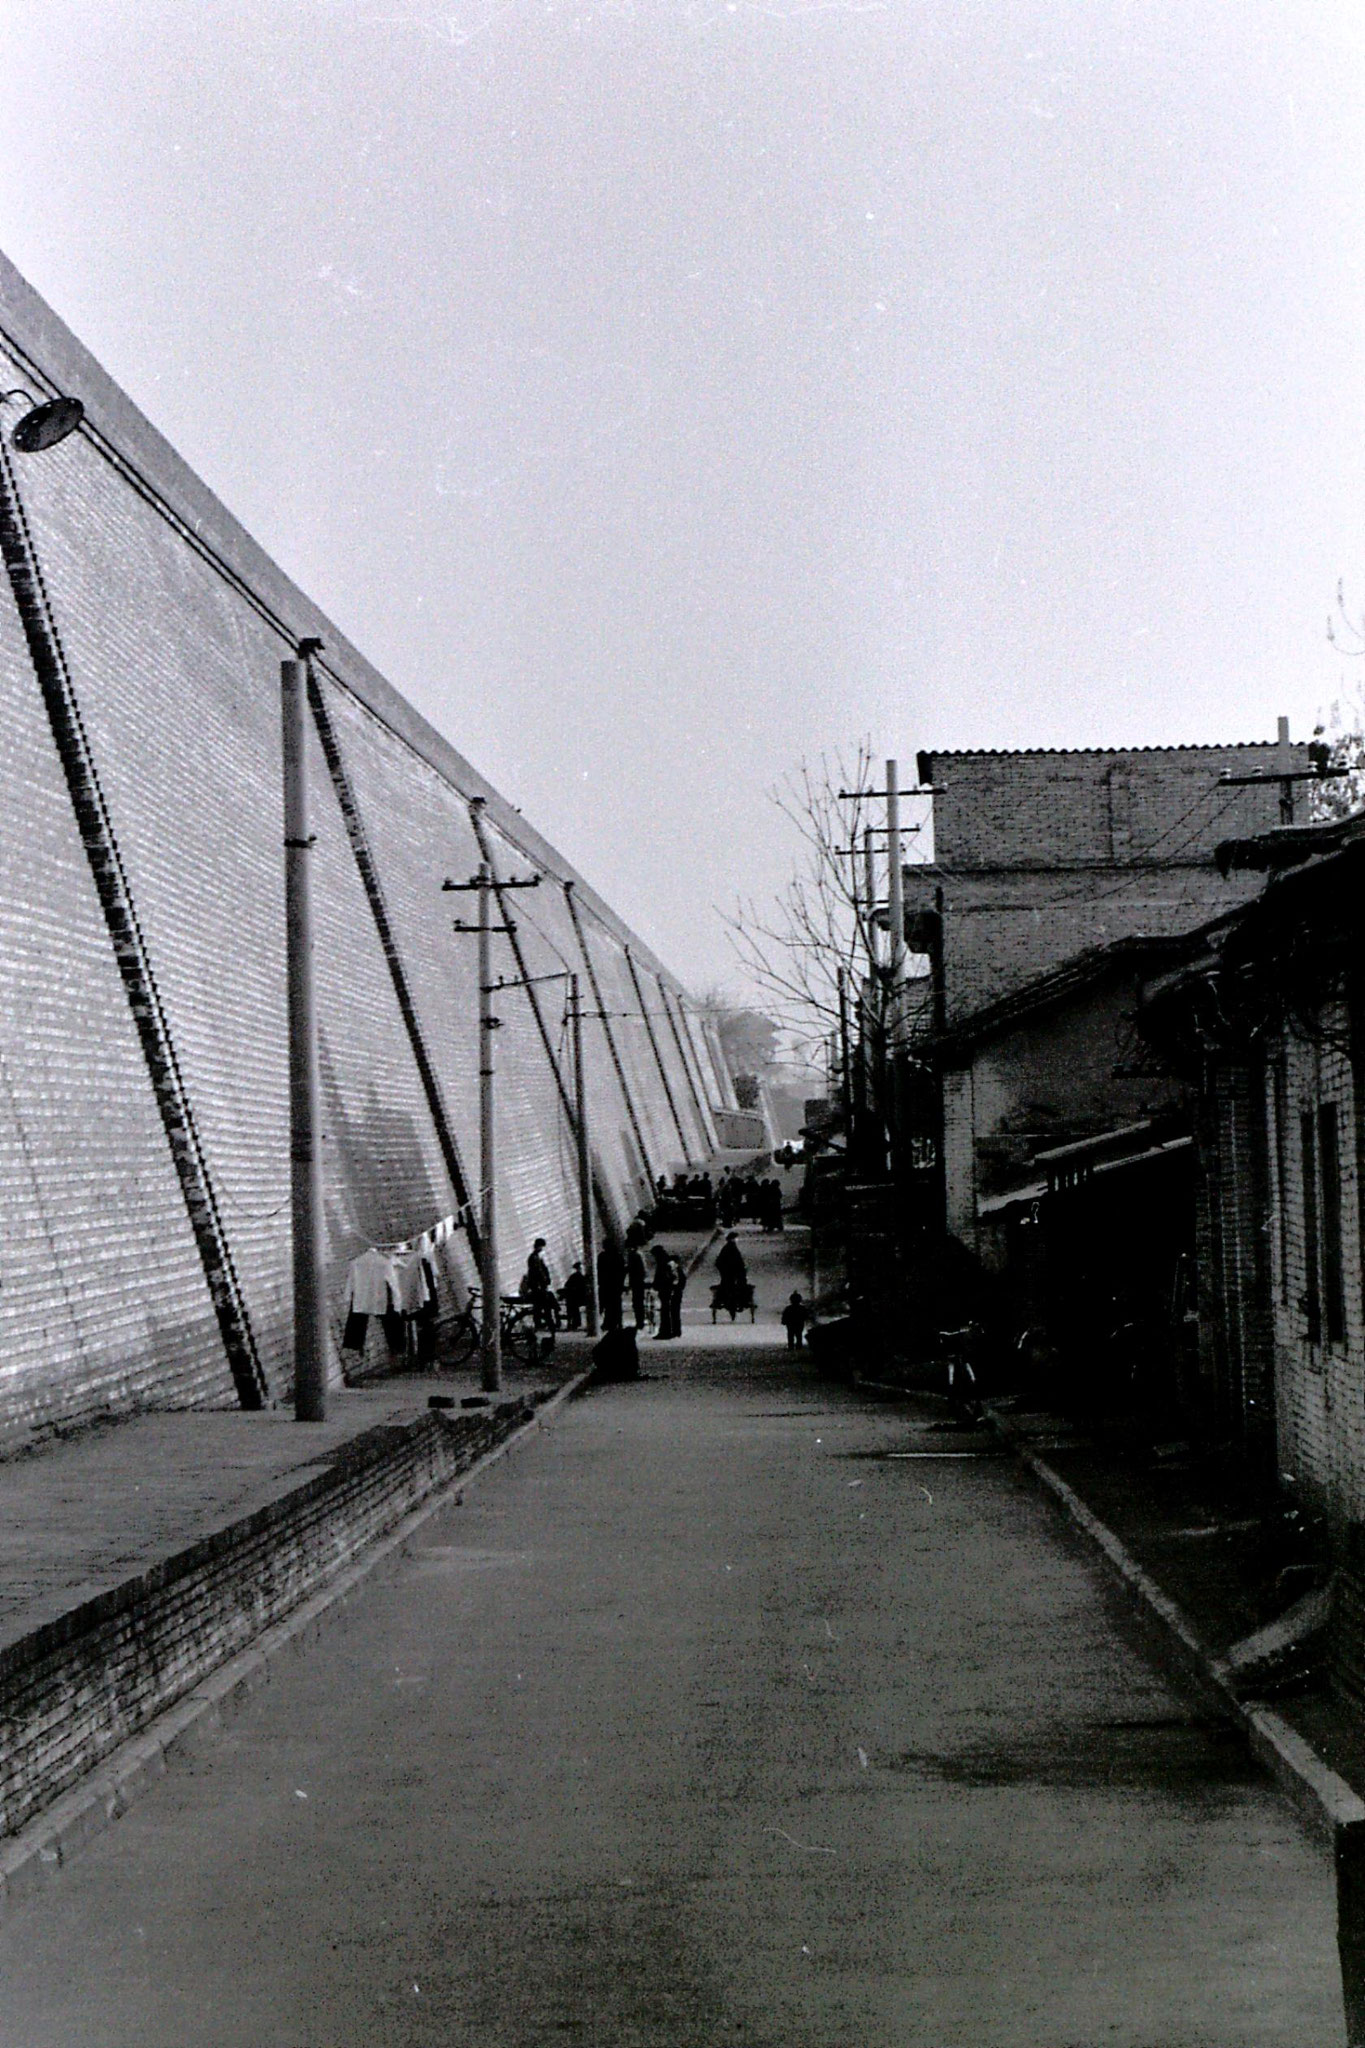 7/3/1989: 24: Xi'an city wall